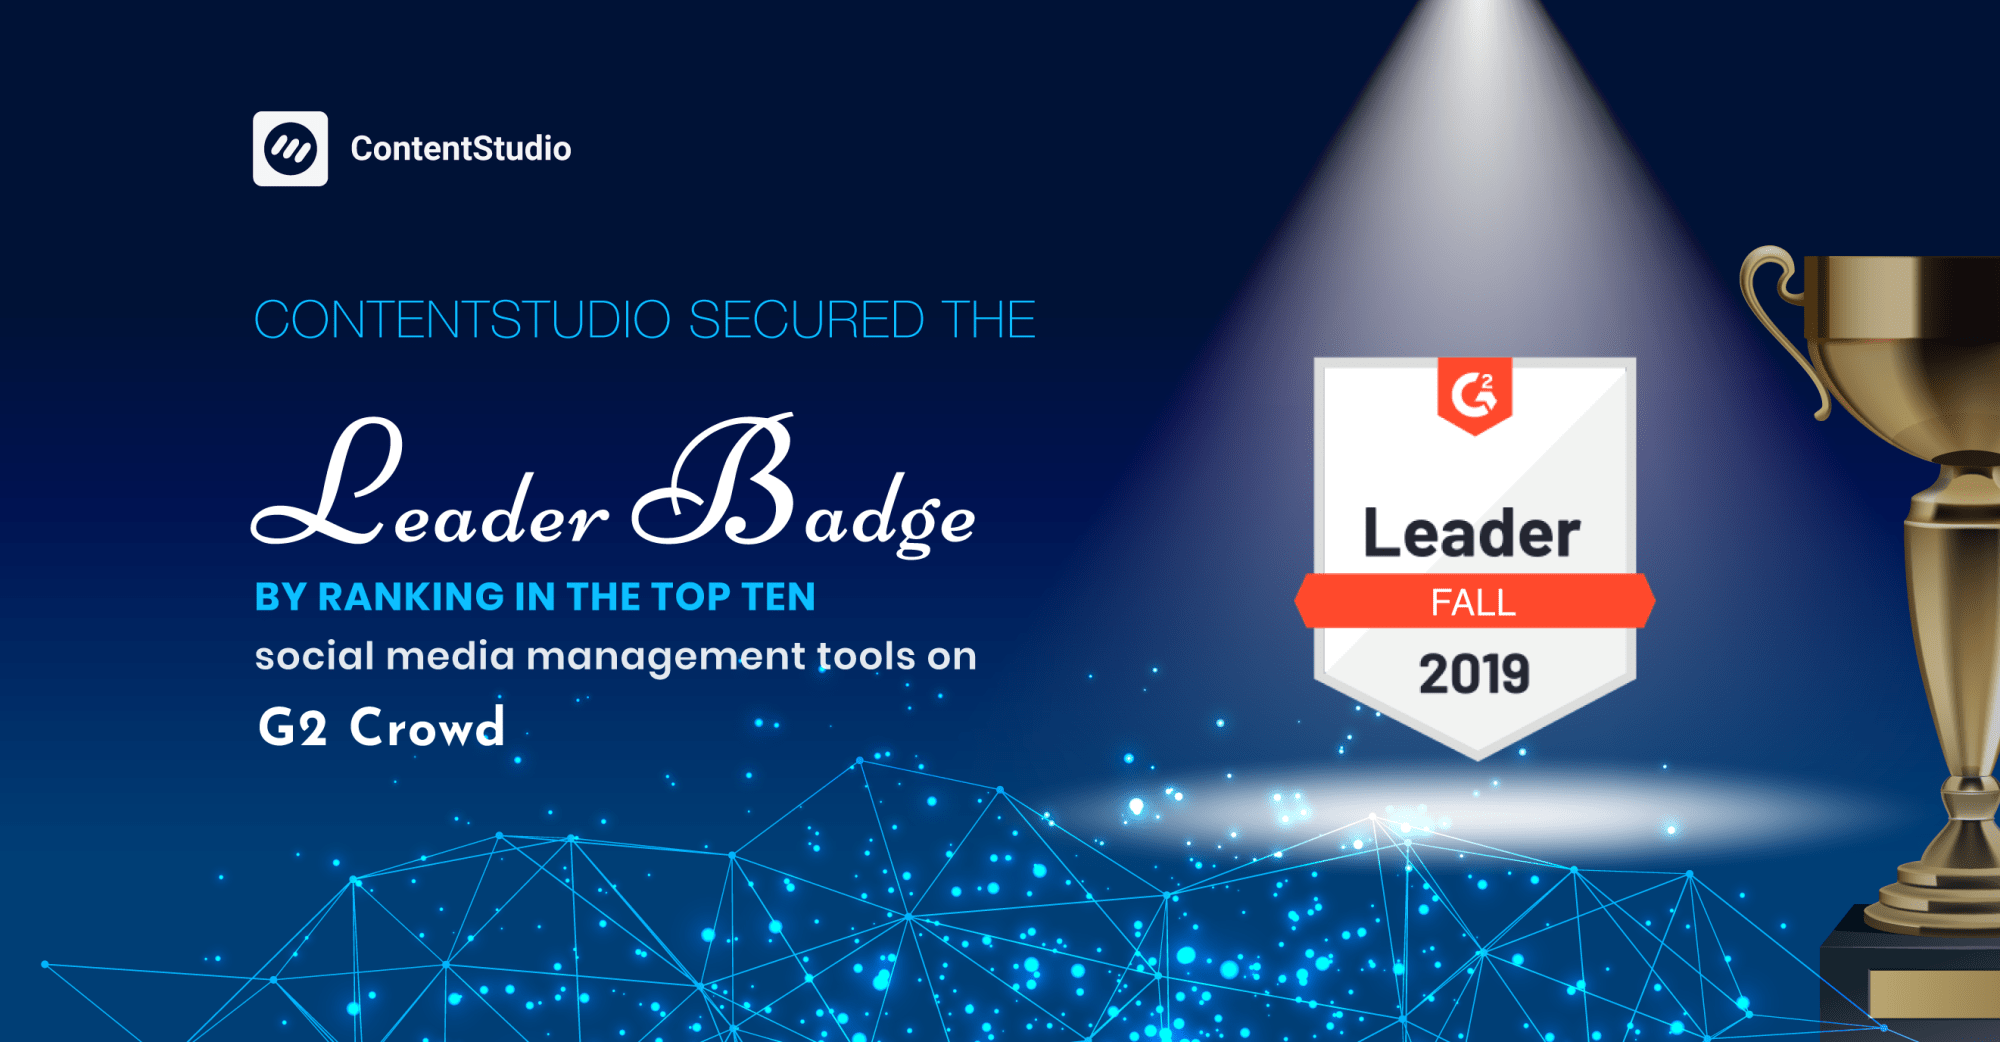 G2 Crowd Leader Award - ContentStudio